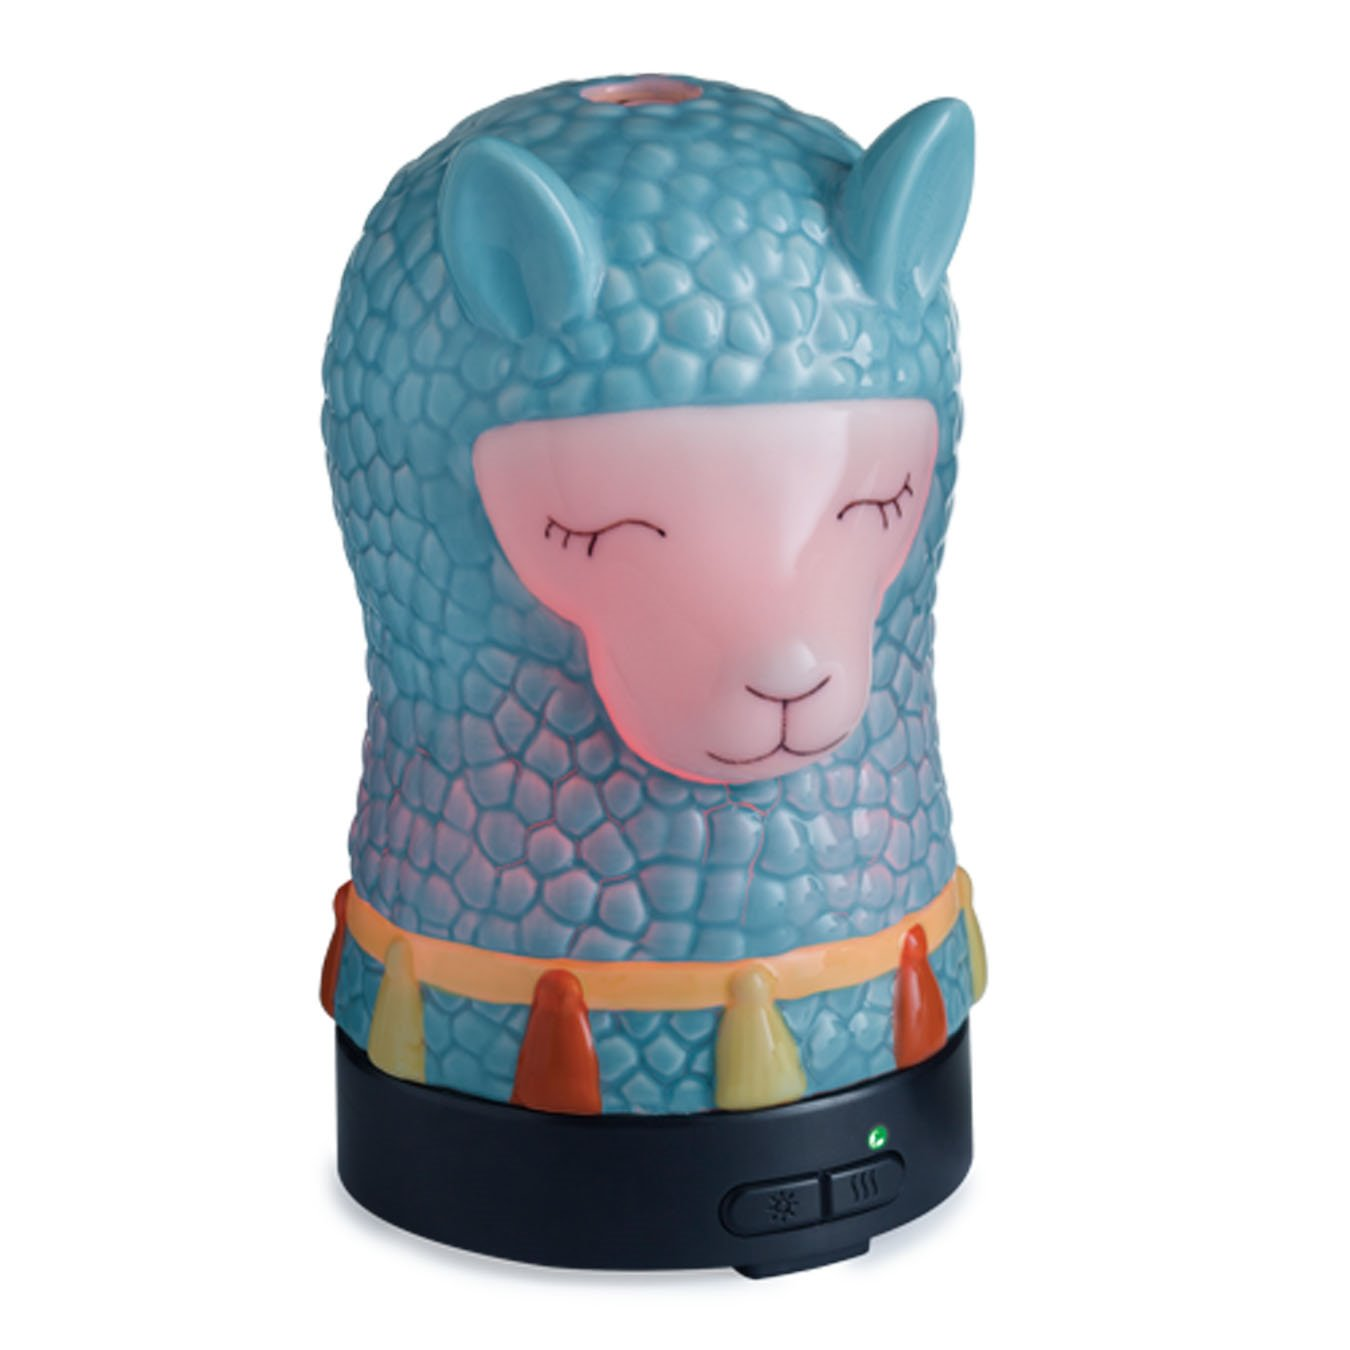 Llama Ultrasonic Essential Oil Diffuser by Airomé